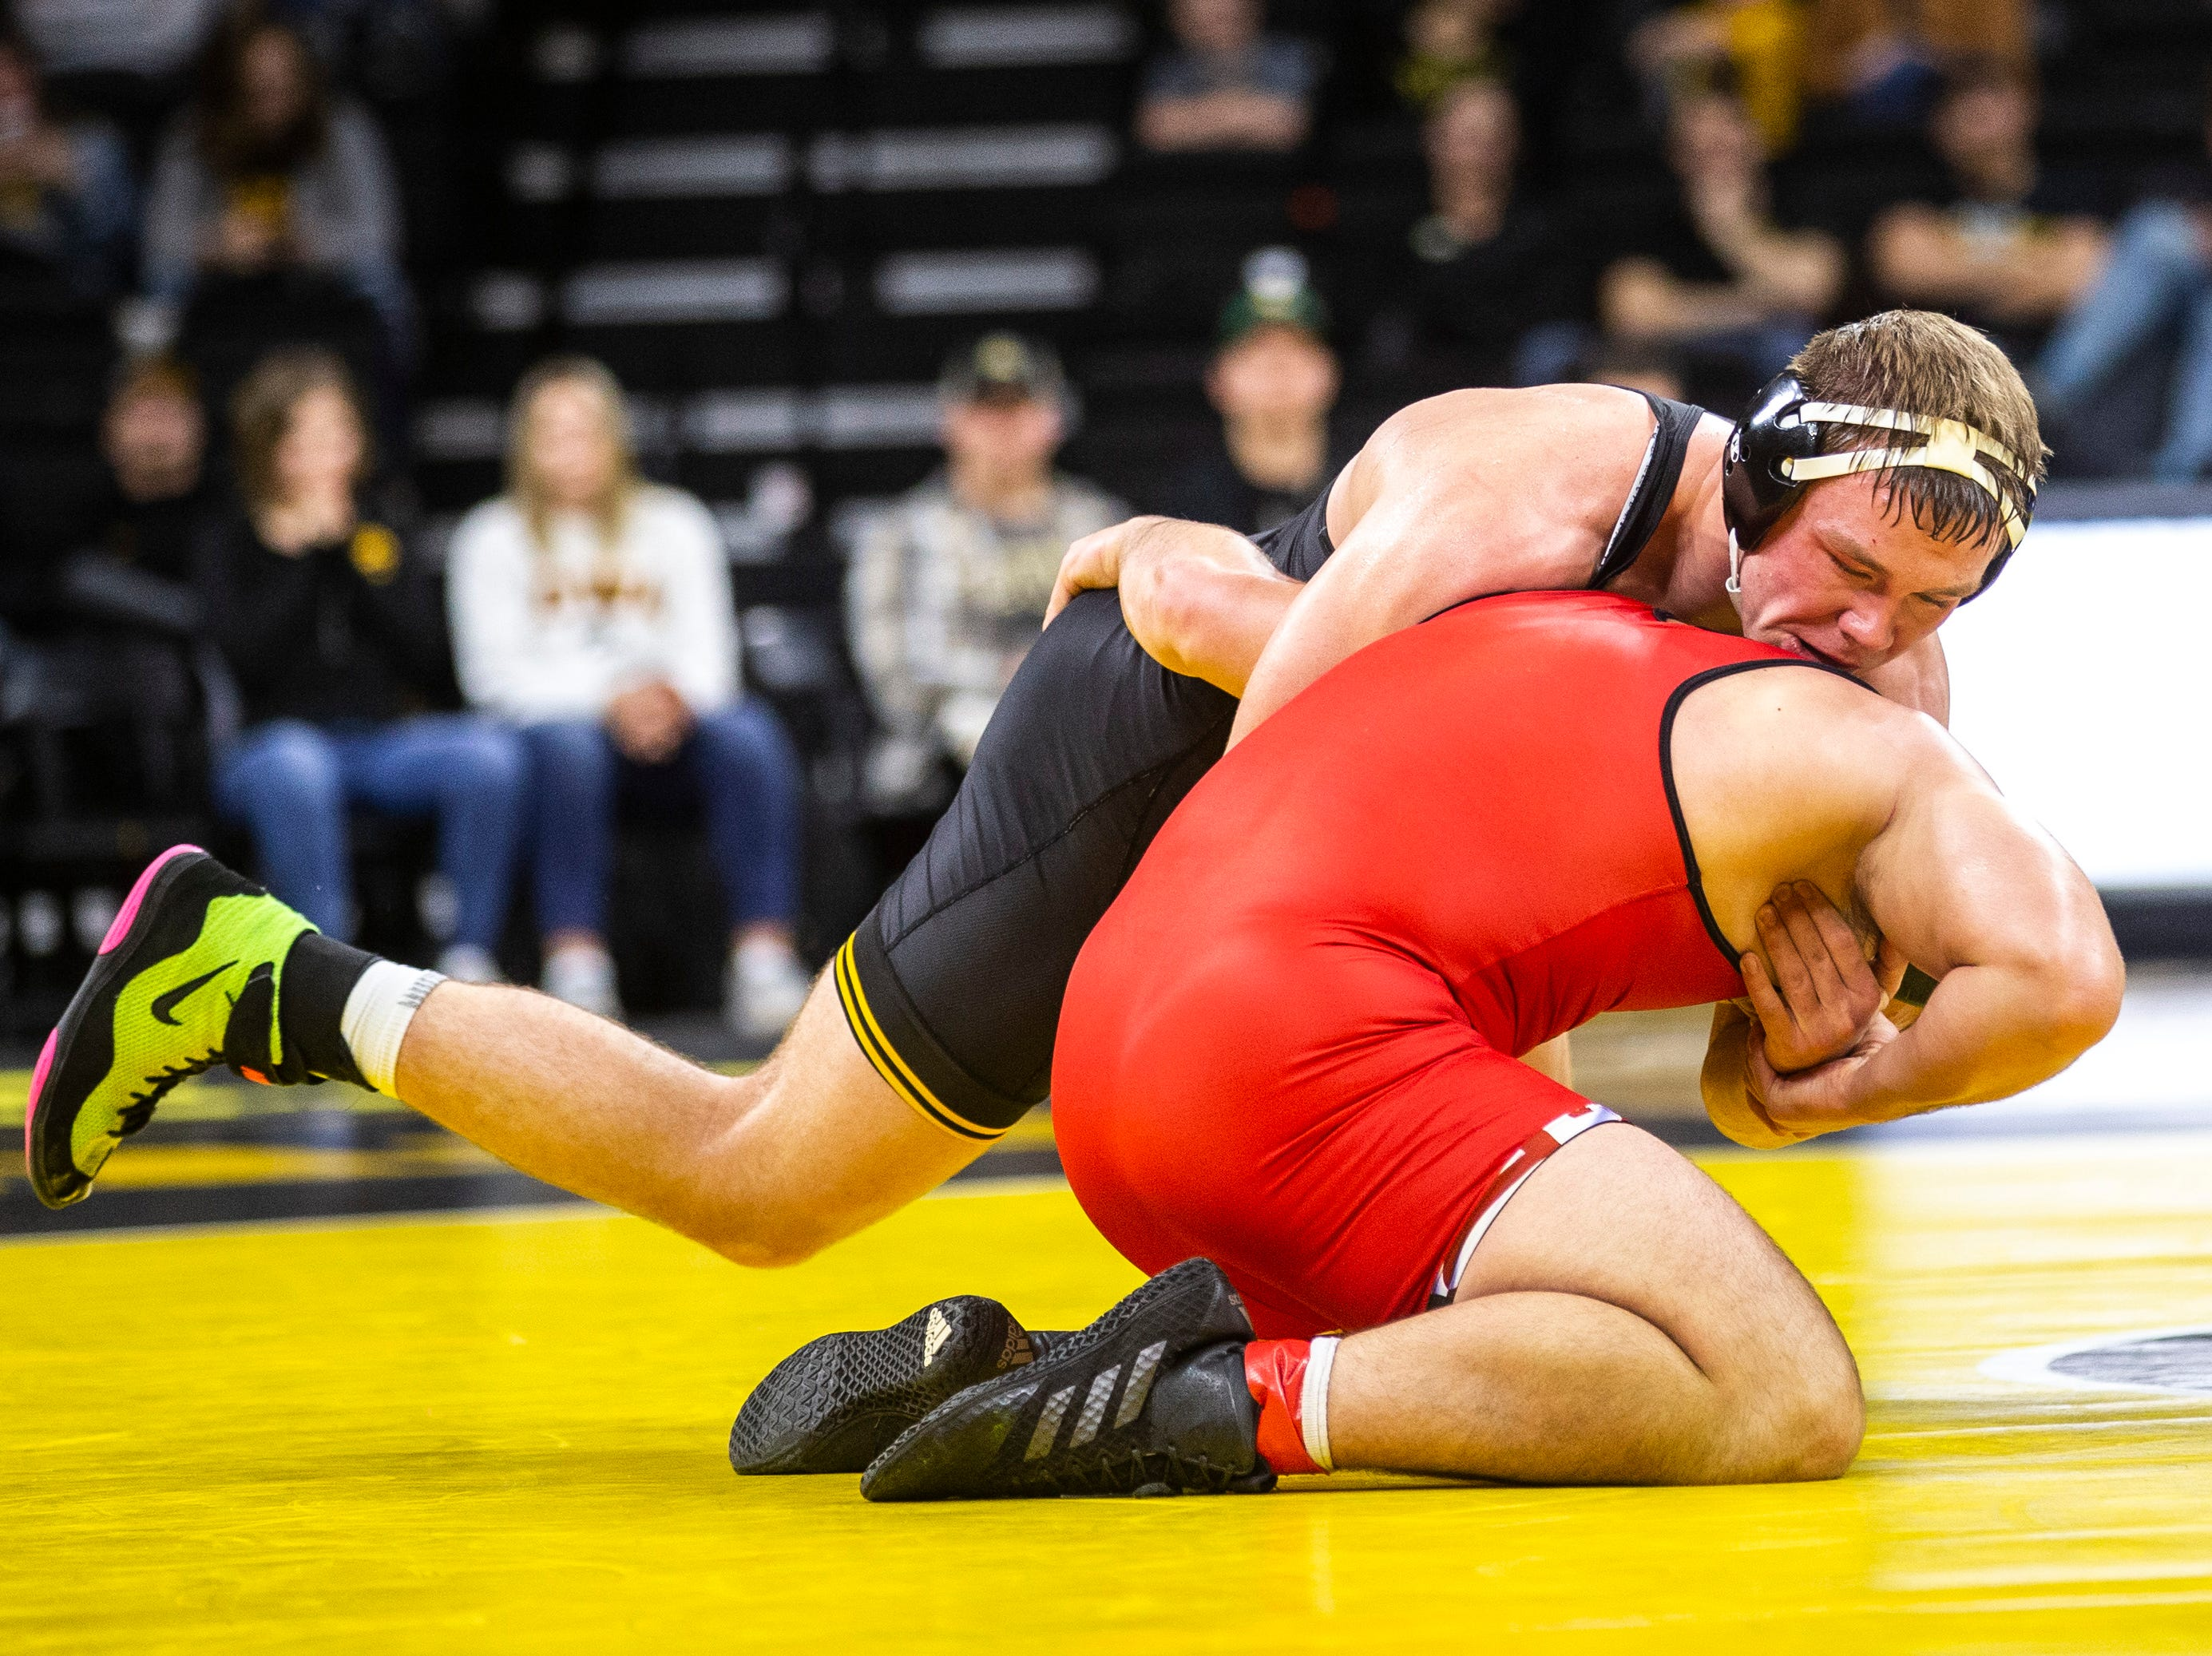 Iowa's Jacob Warner, left, wrestles Maryland's Niko Cappello at 197 during a NCAA Big Ten Conference wrestling dual on Friday, Feb. 8, 2019 at Carver-Hawkeye Arena in Iowa City, Iowa.